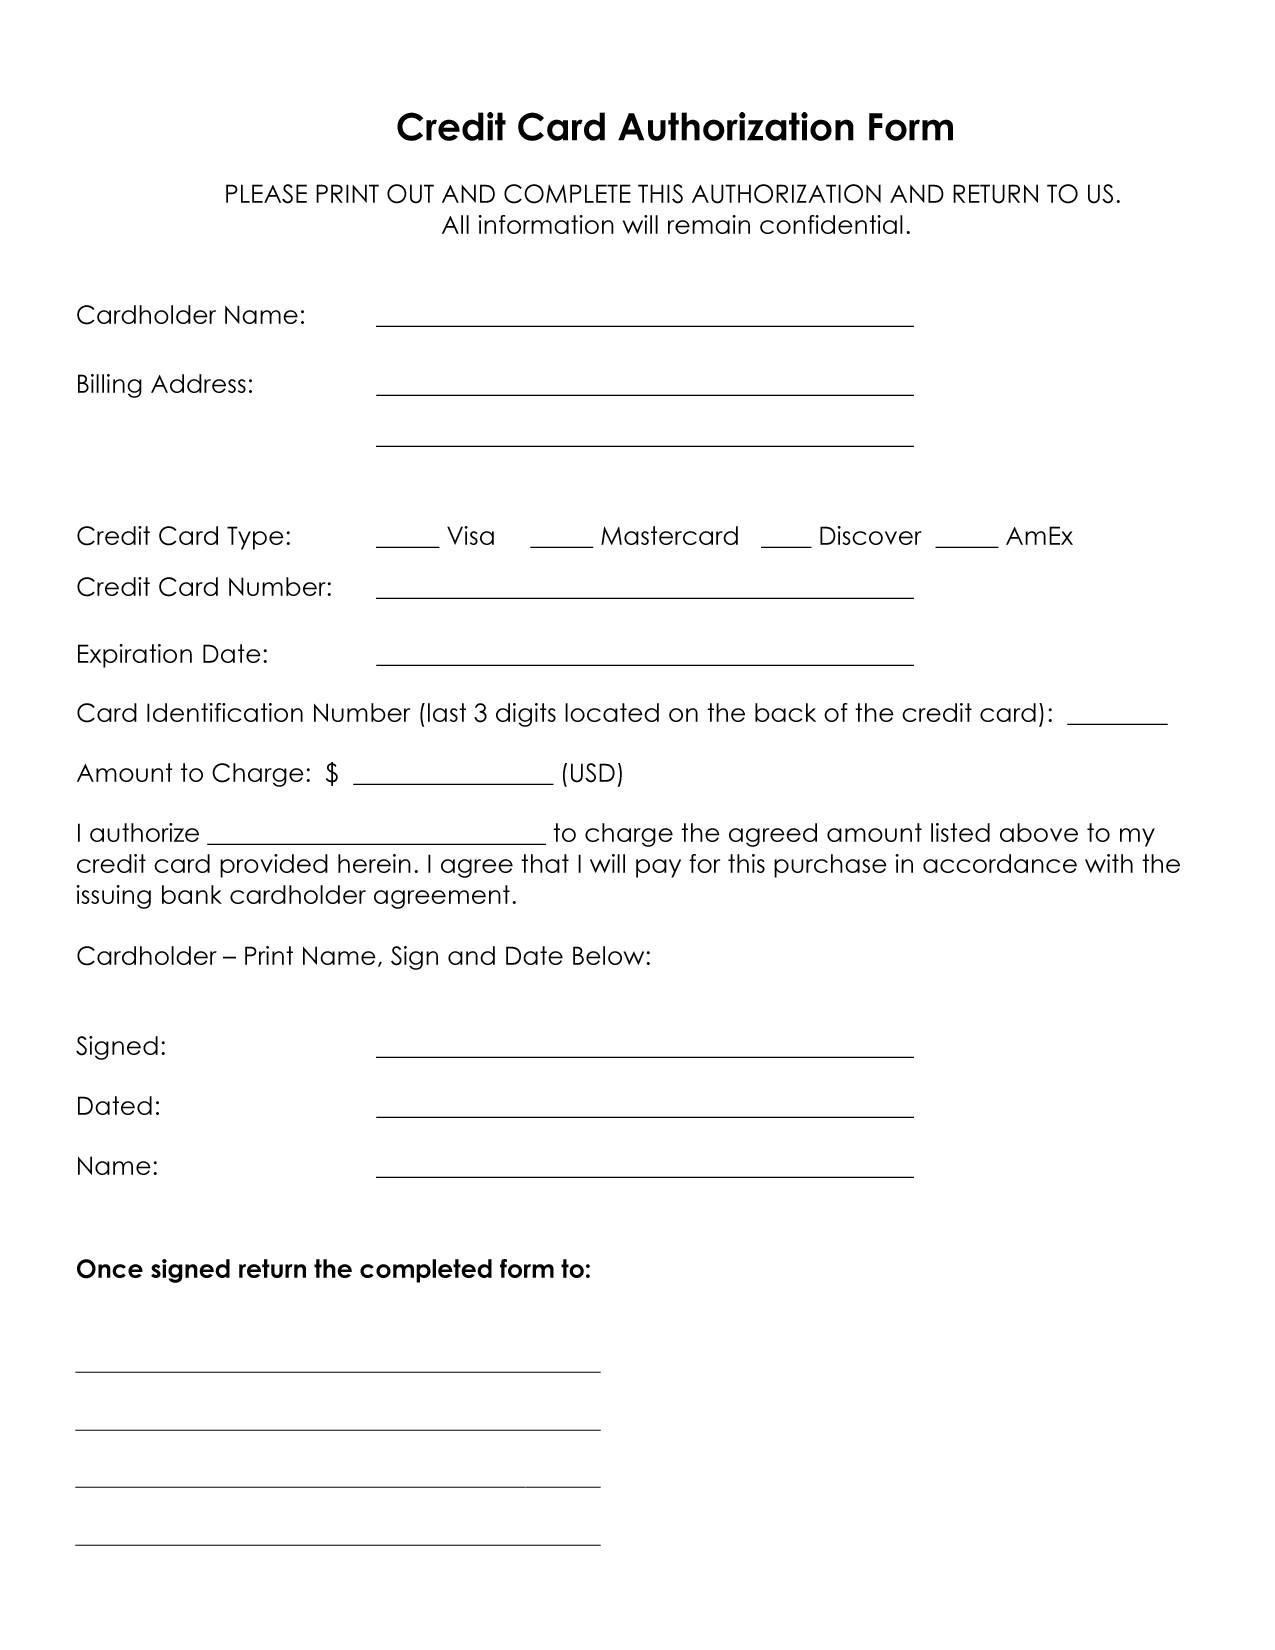 credit card authorization forms from service related generic credit card authorization forms